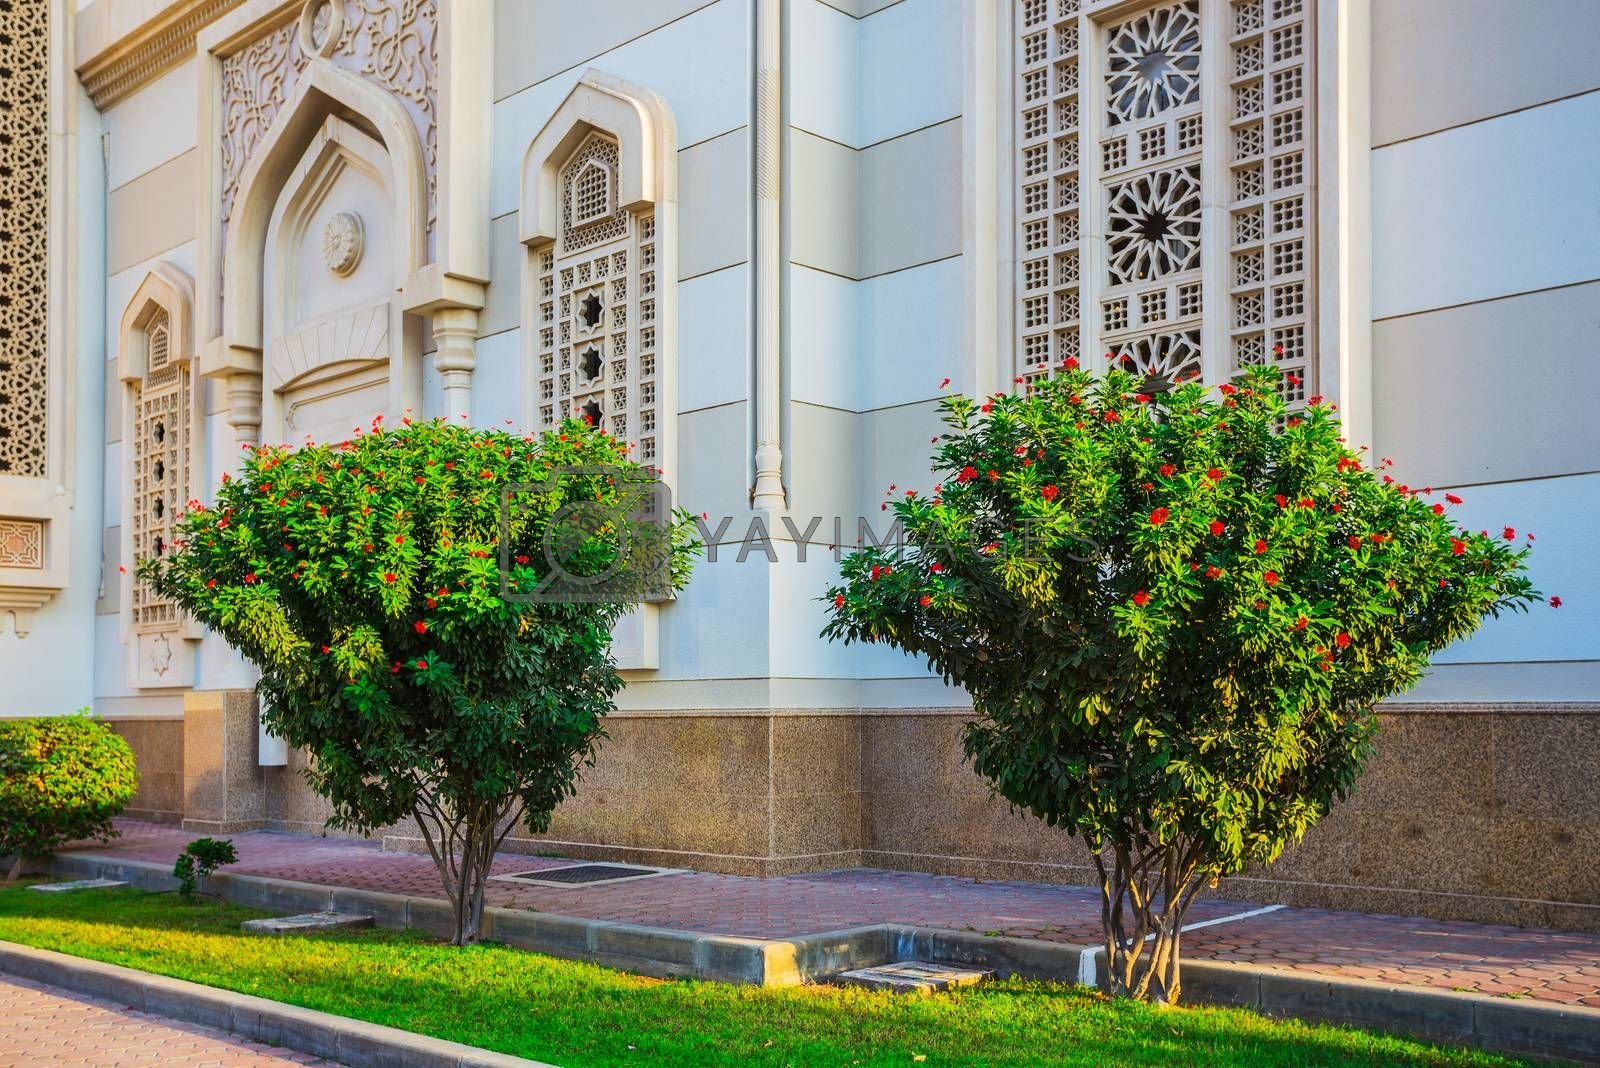 Trees on the background of a mosque in Sharjah, UAE